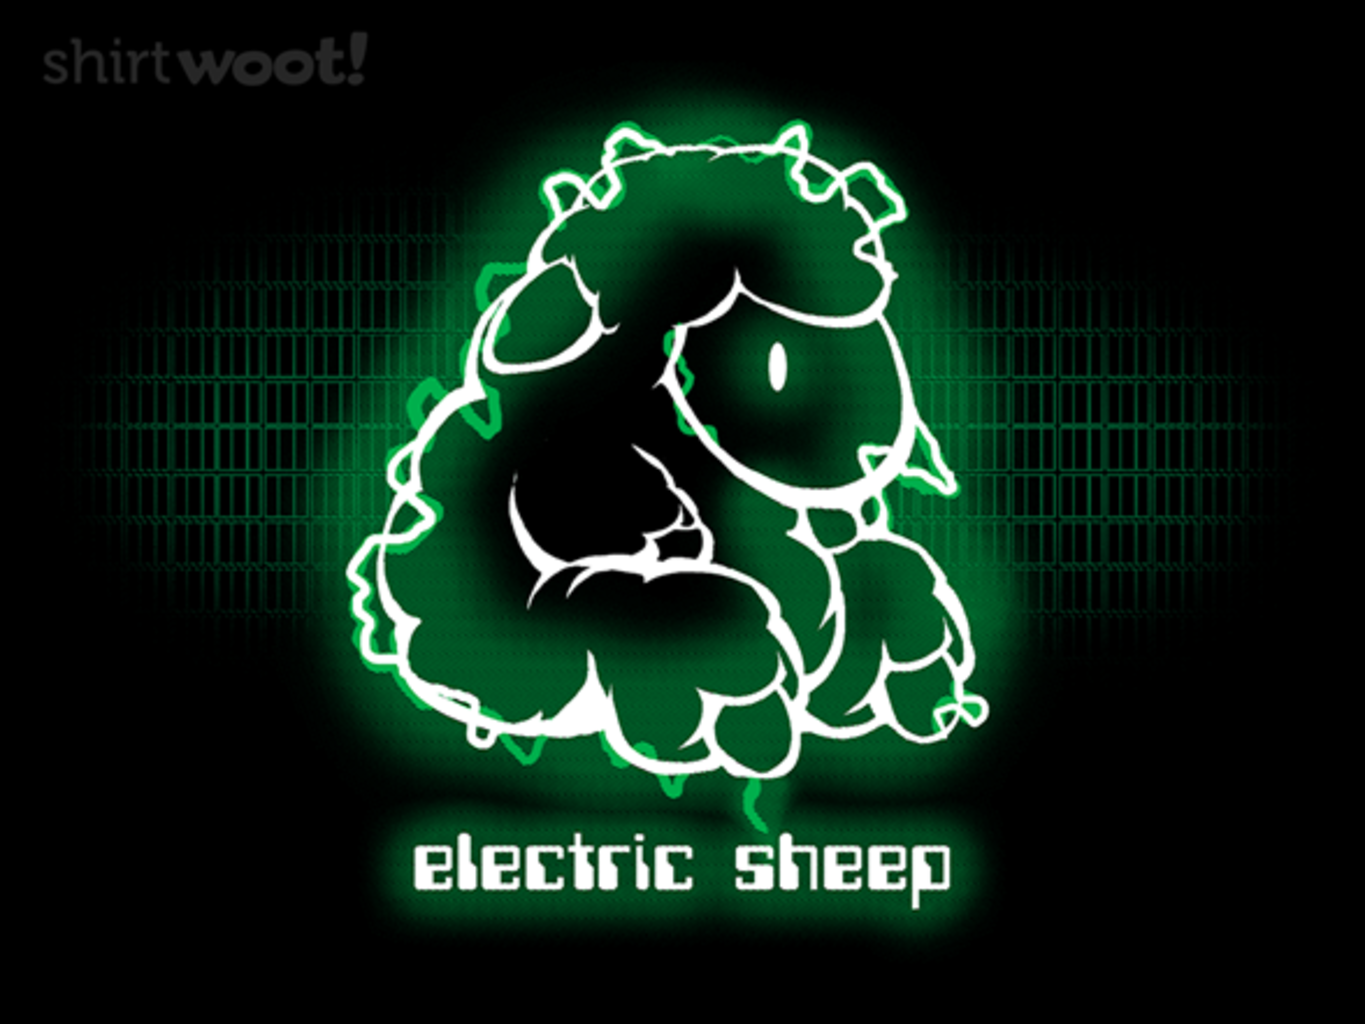 Woot!: Electric Sheep